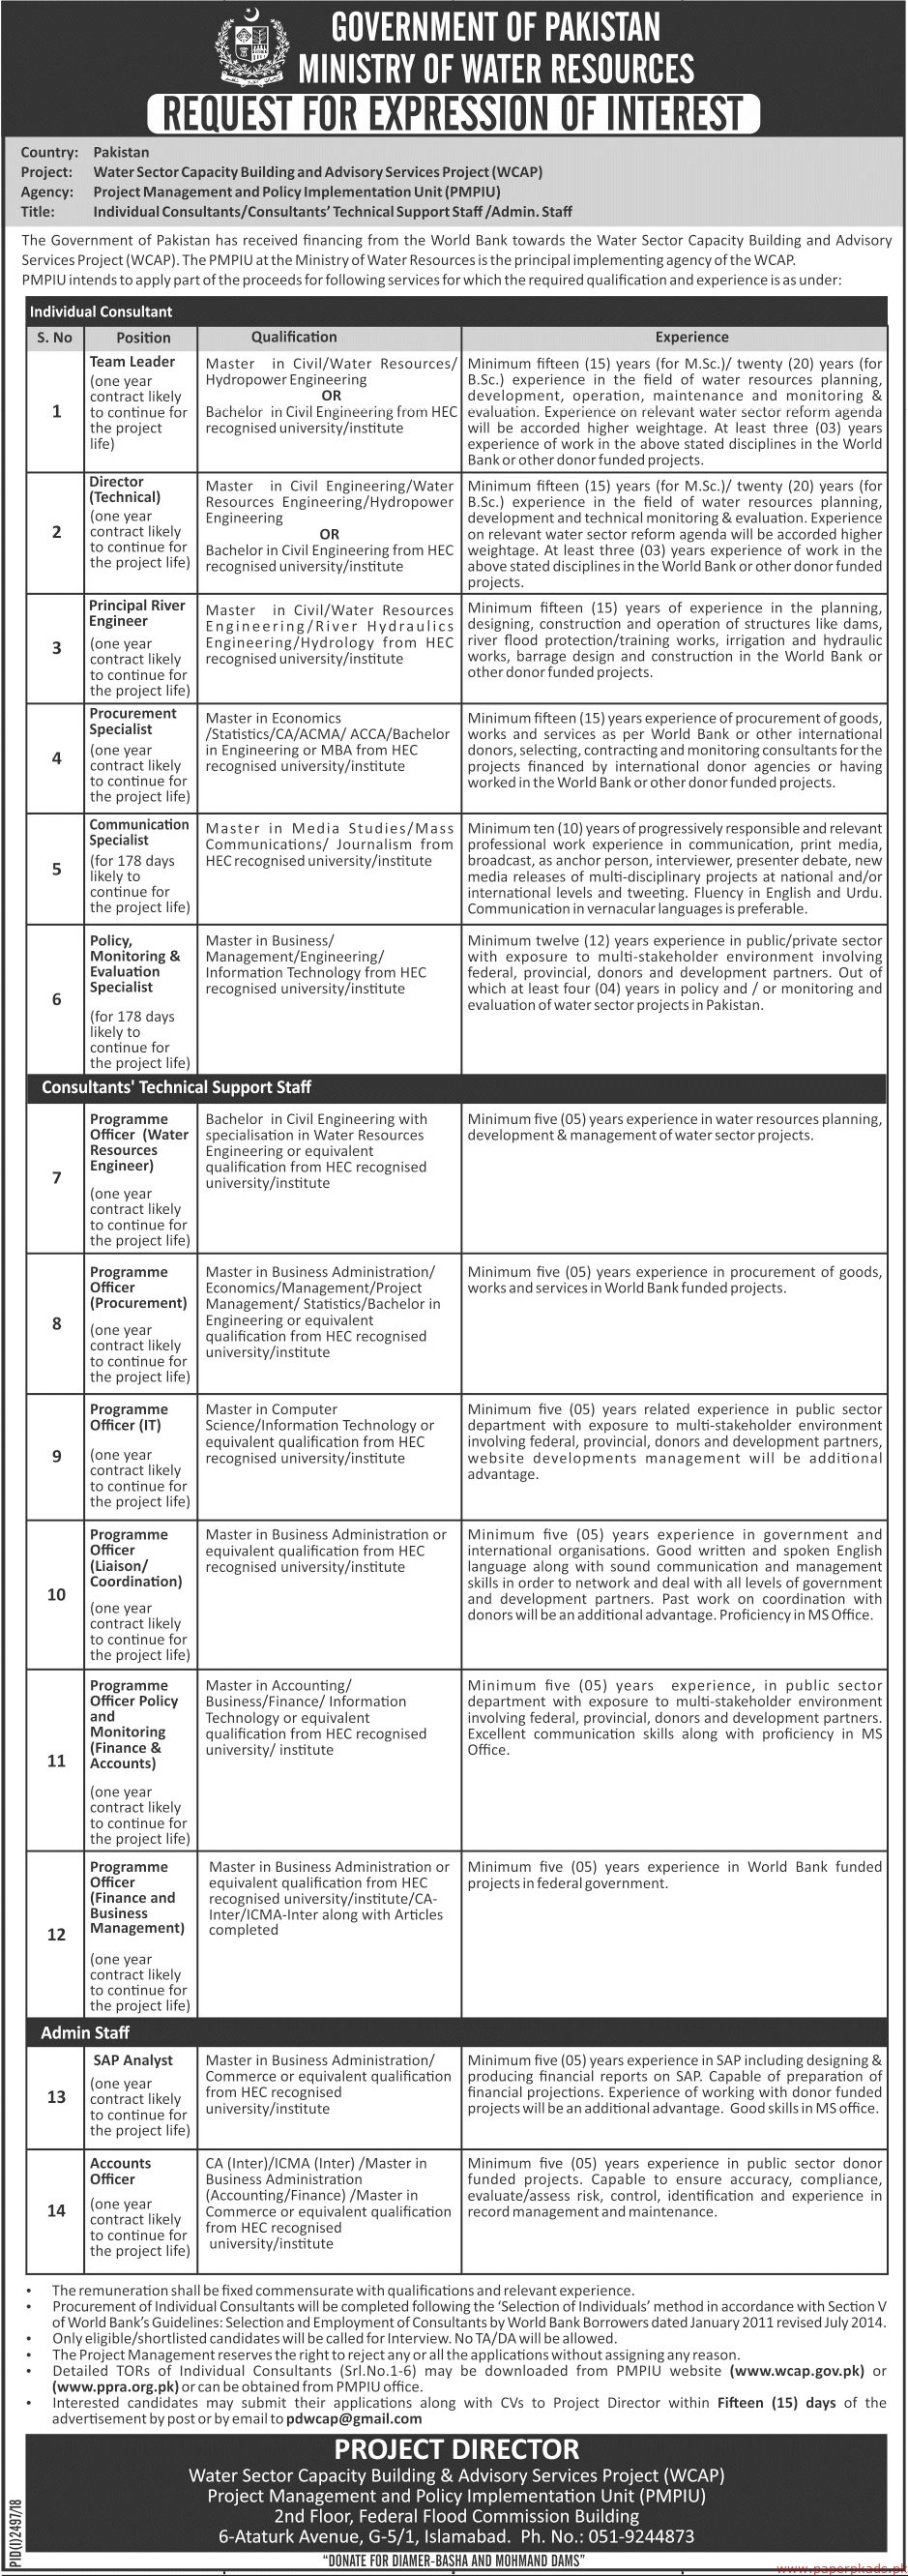 Government of Pakistan - Ministry of Water Resources Jobs 2018 Latest